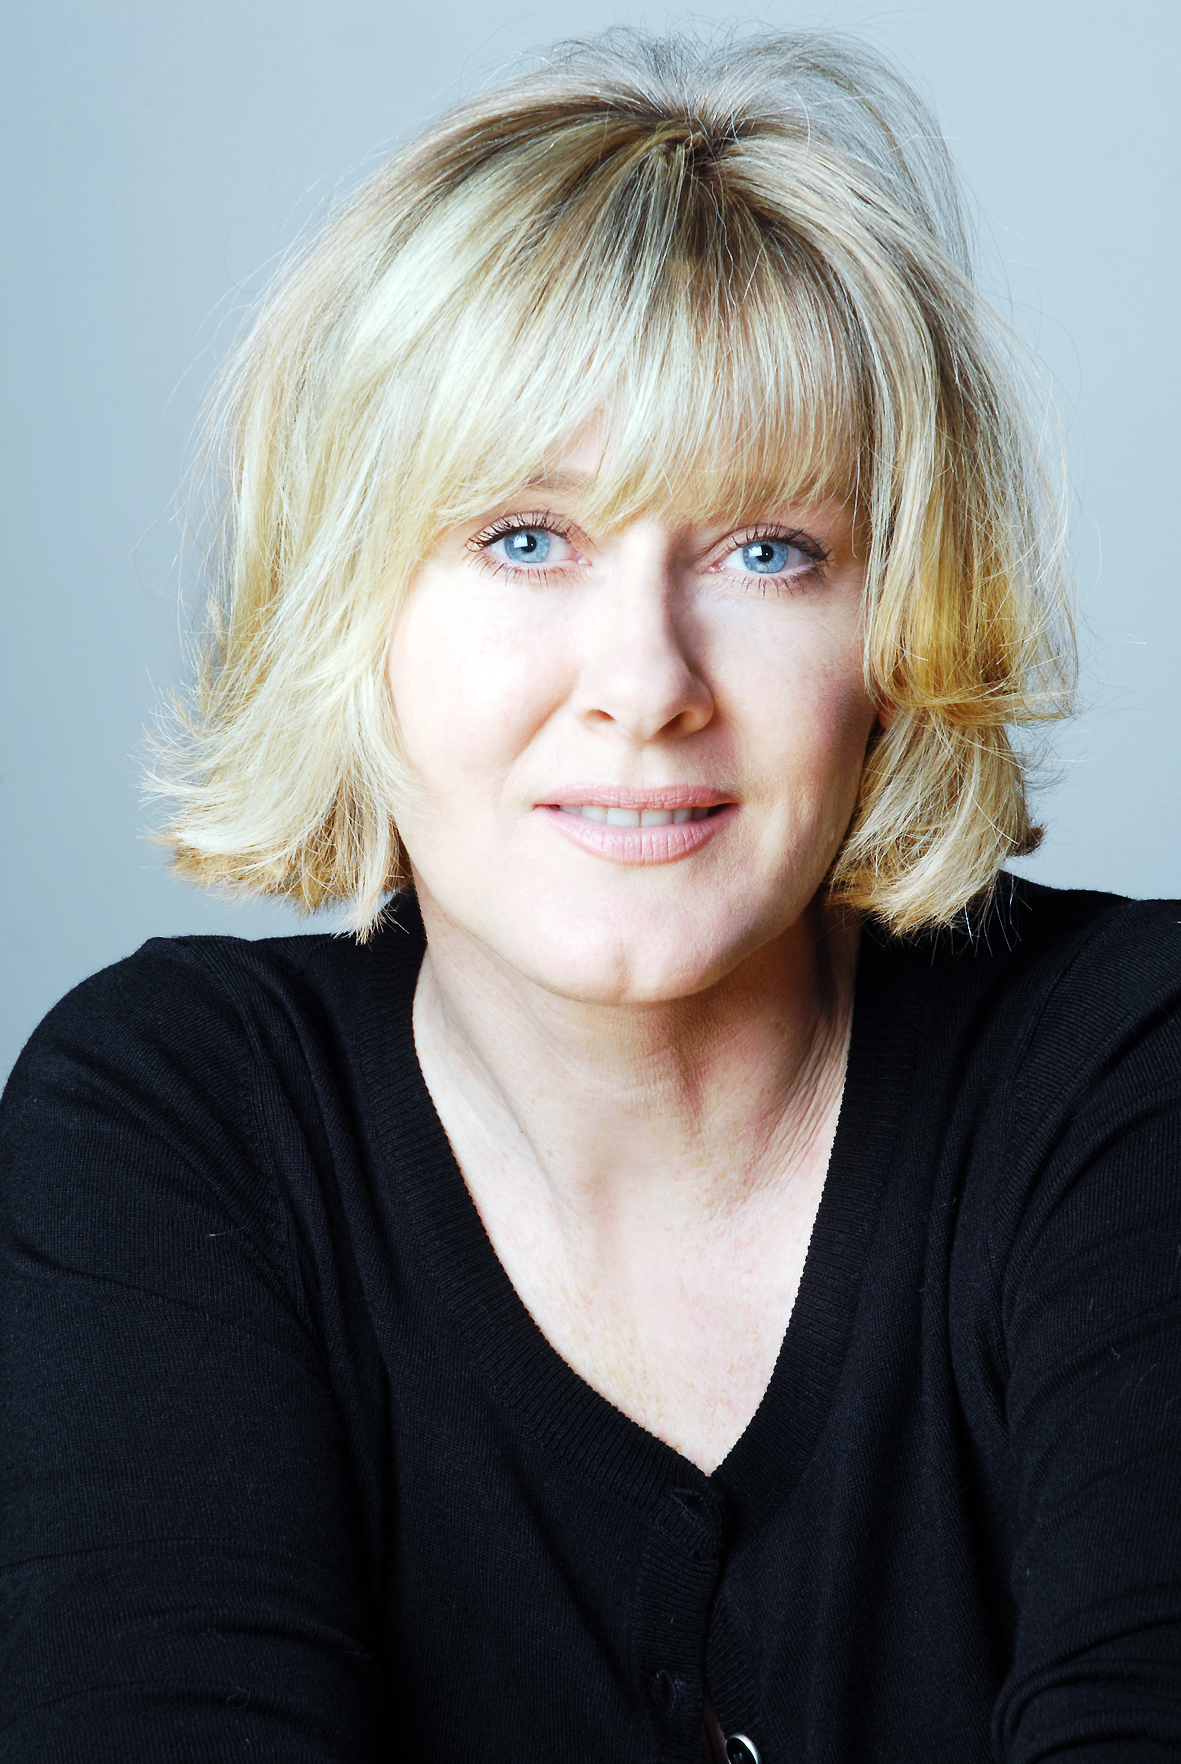 Forum on this topic: Sarah Lancashire: I Truly Believe That Gender , sarah-lancashire-i-truly-believe-that-gender/